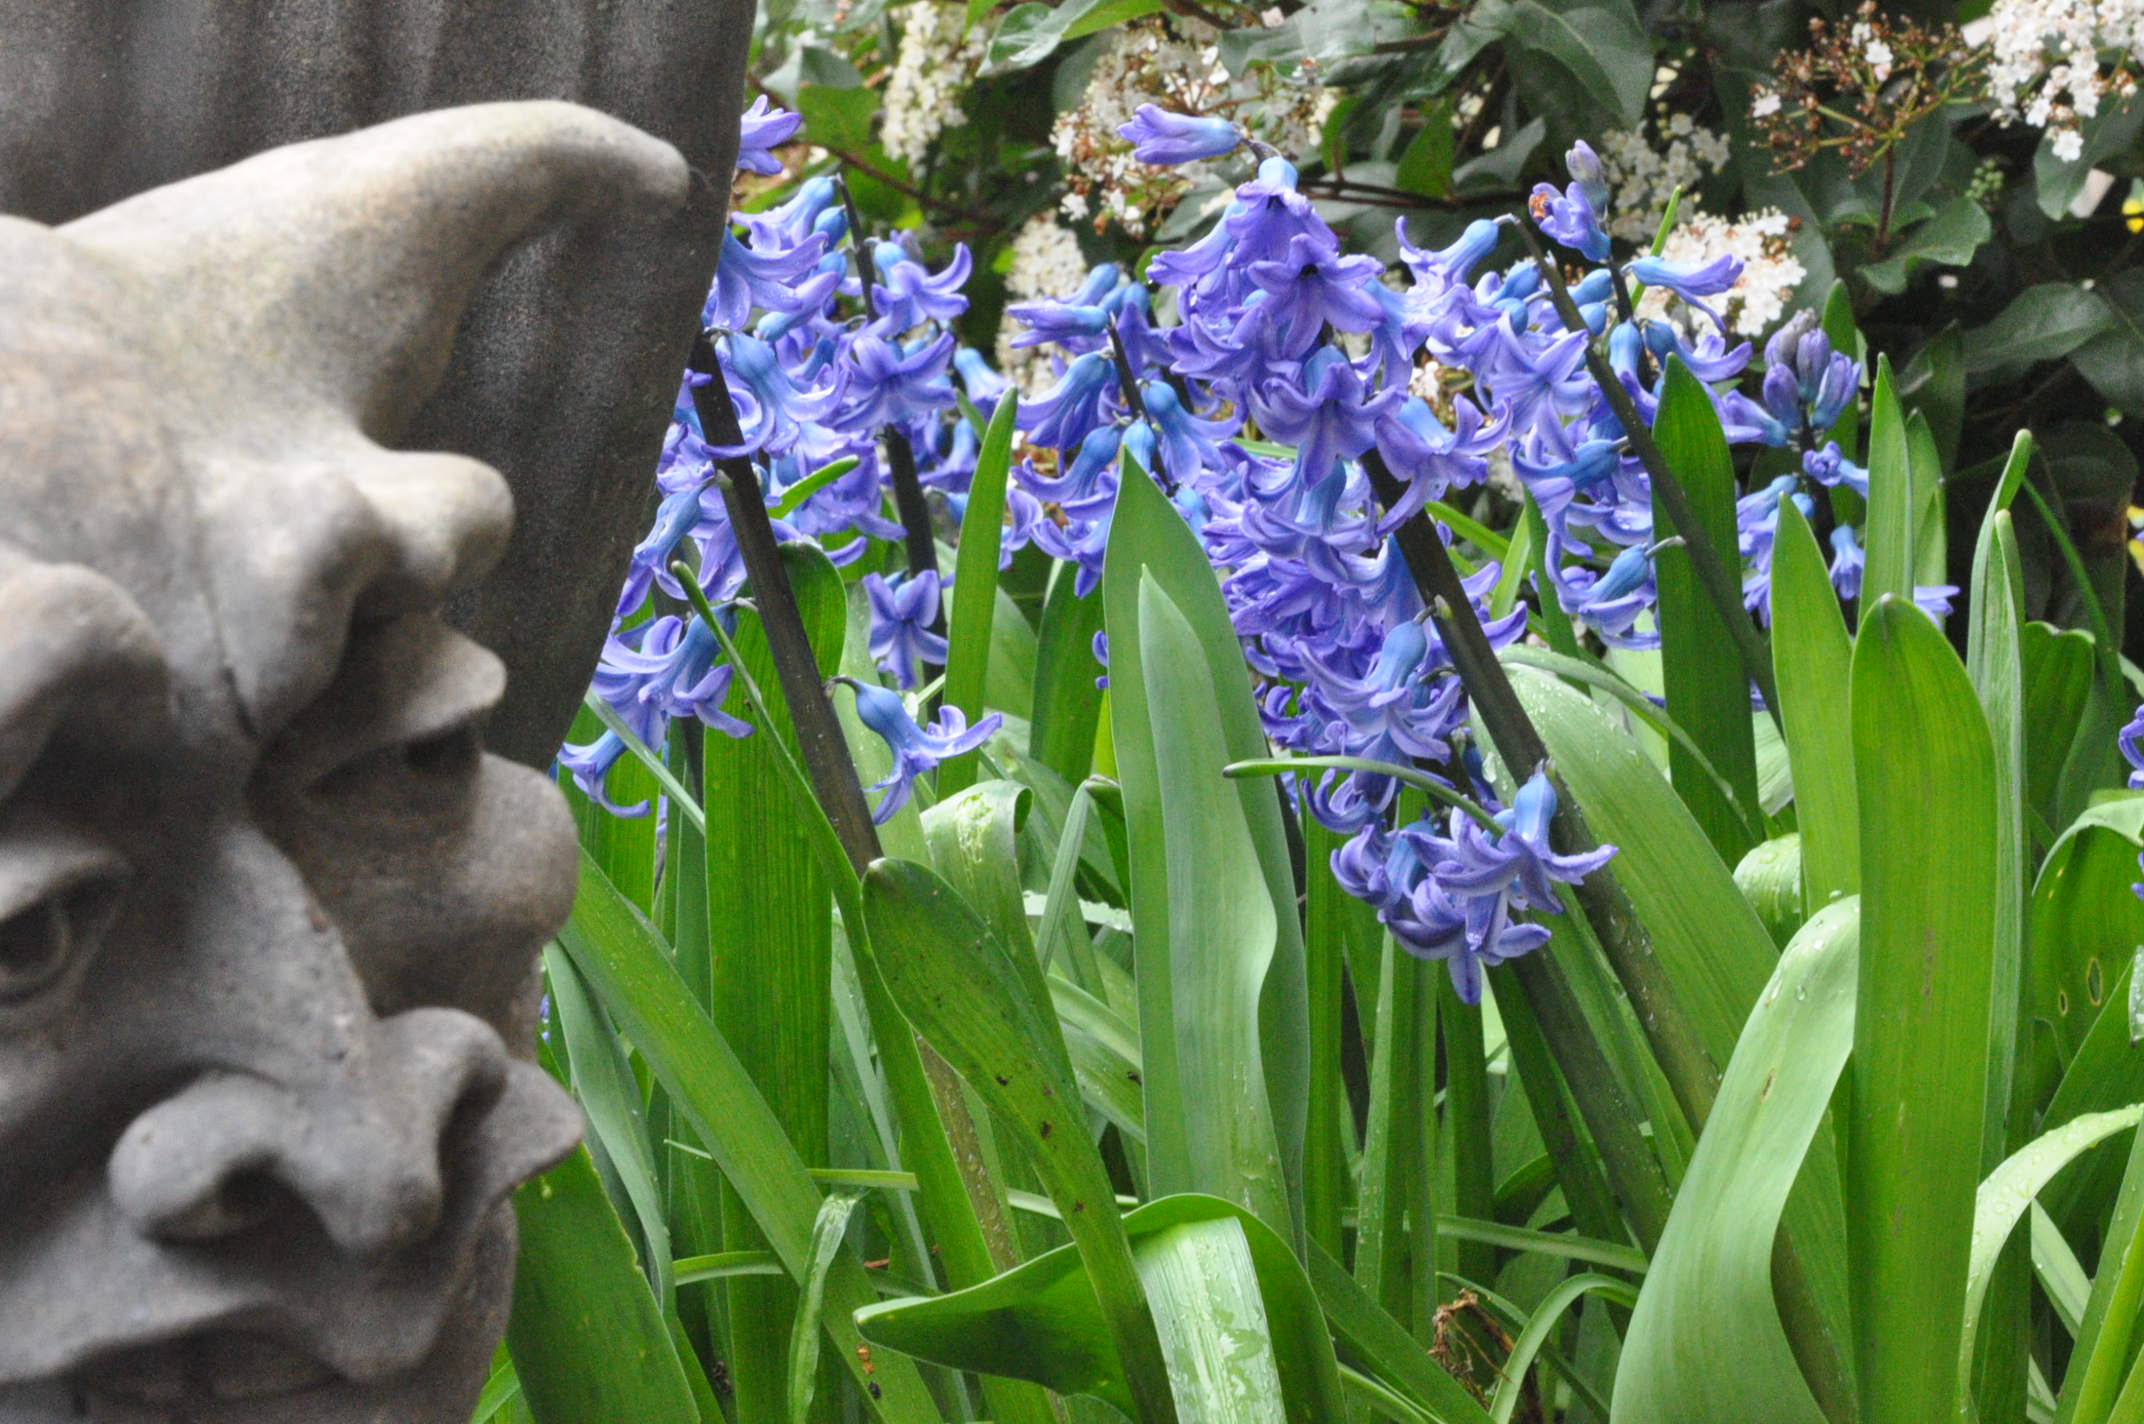 Gargoyle and Hyachinths in the Albion Manor Garden